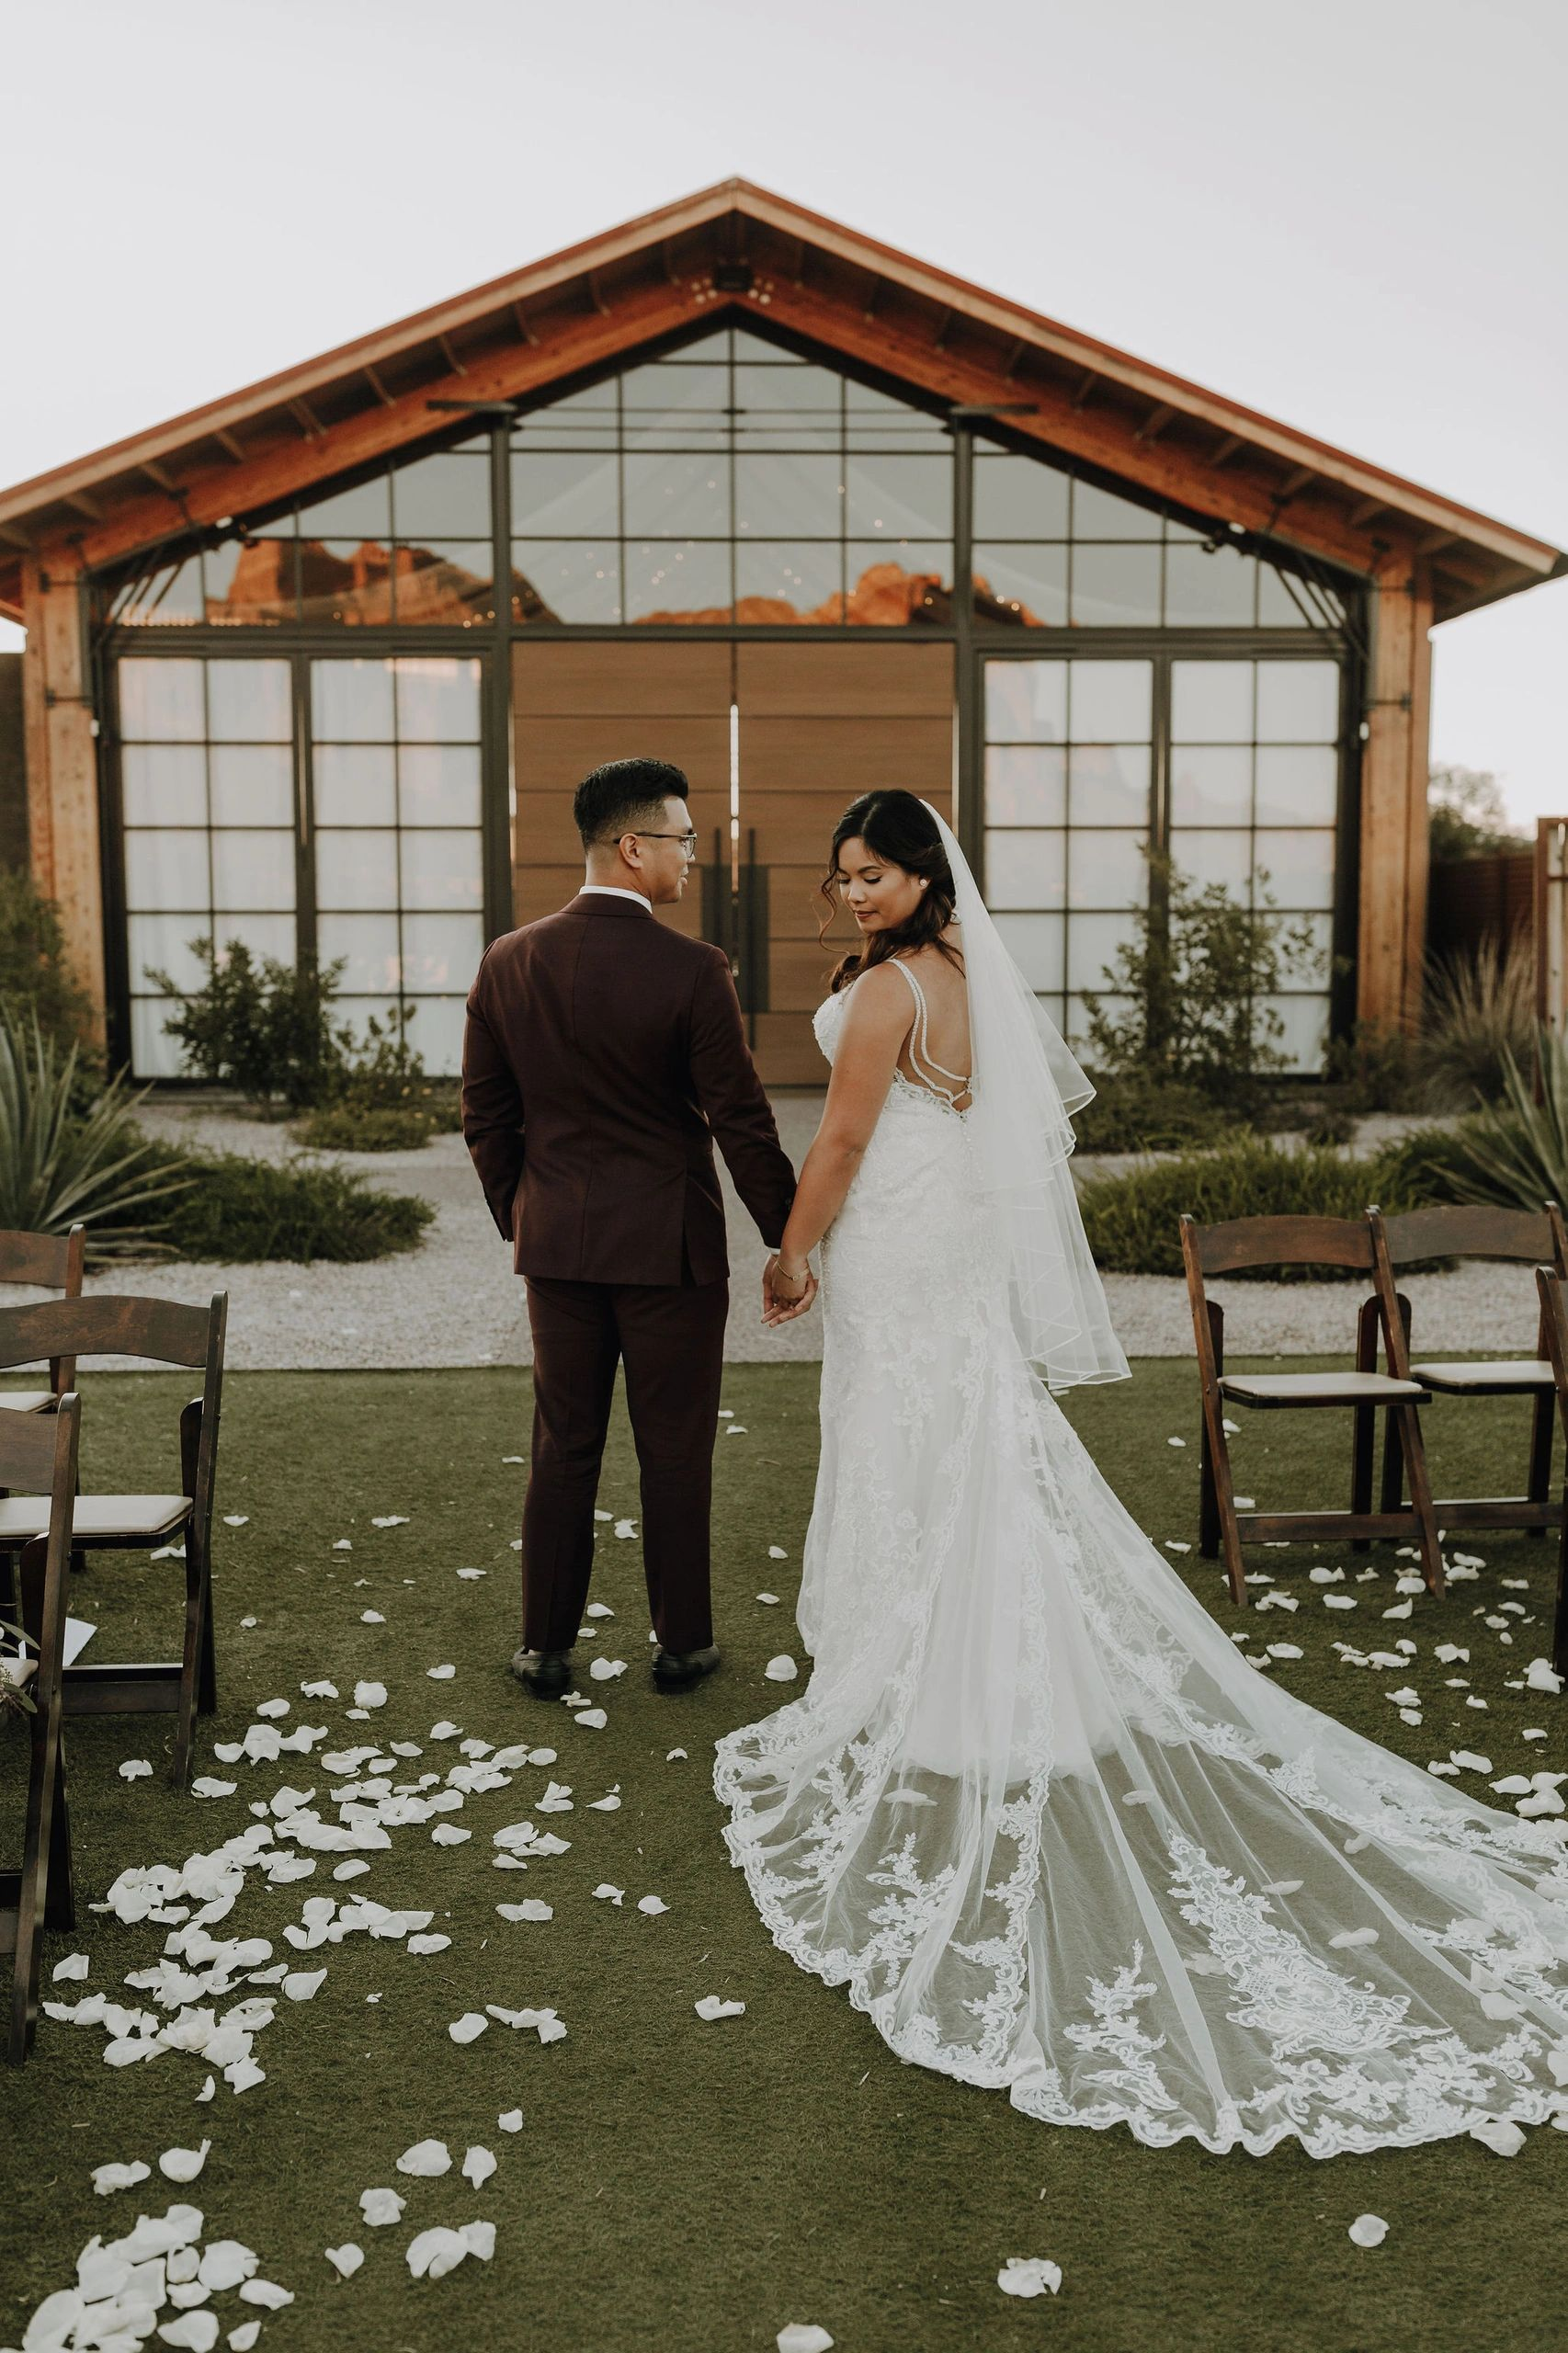 Romantic Bridal Dress from Weddings and Dreams Bridal in Fremont, CA